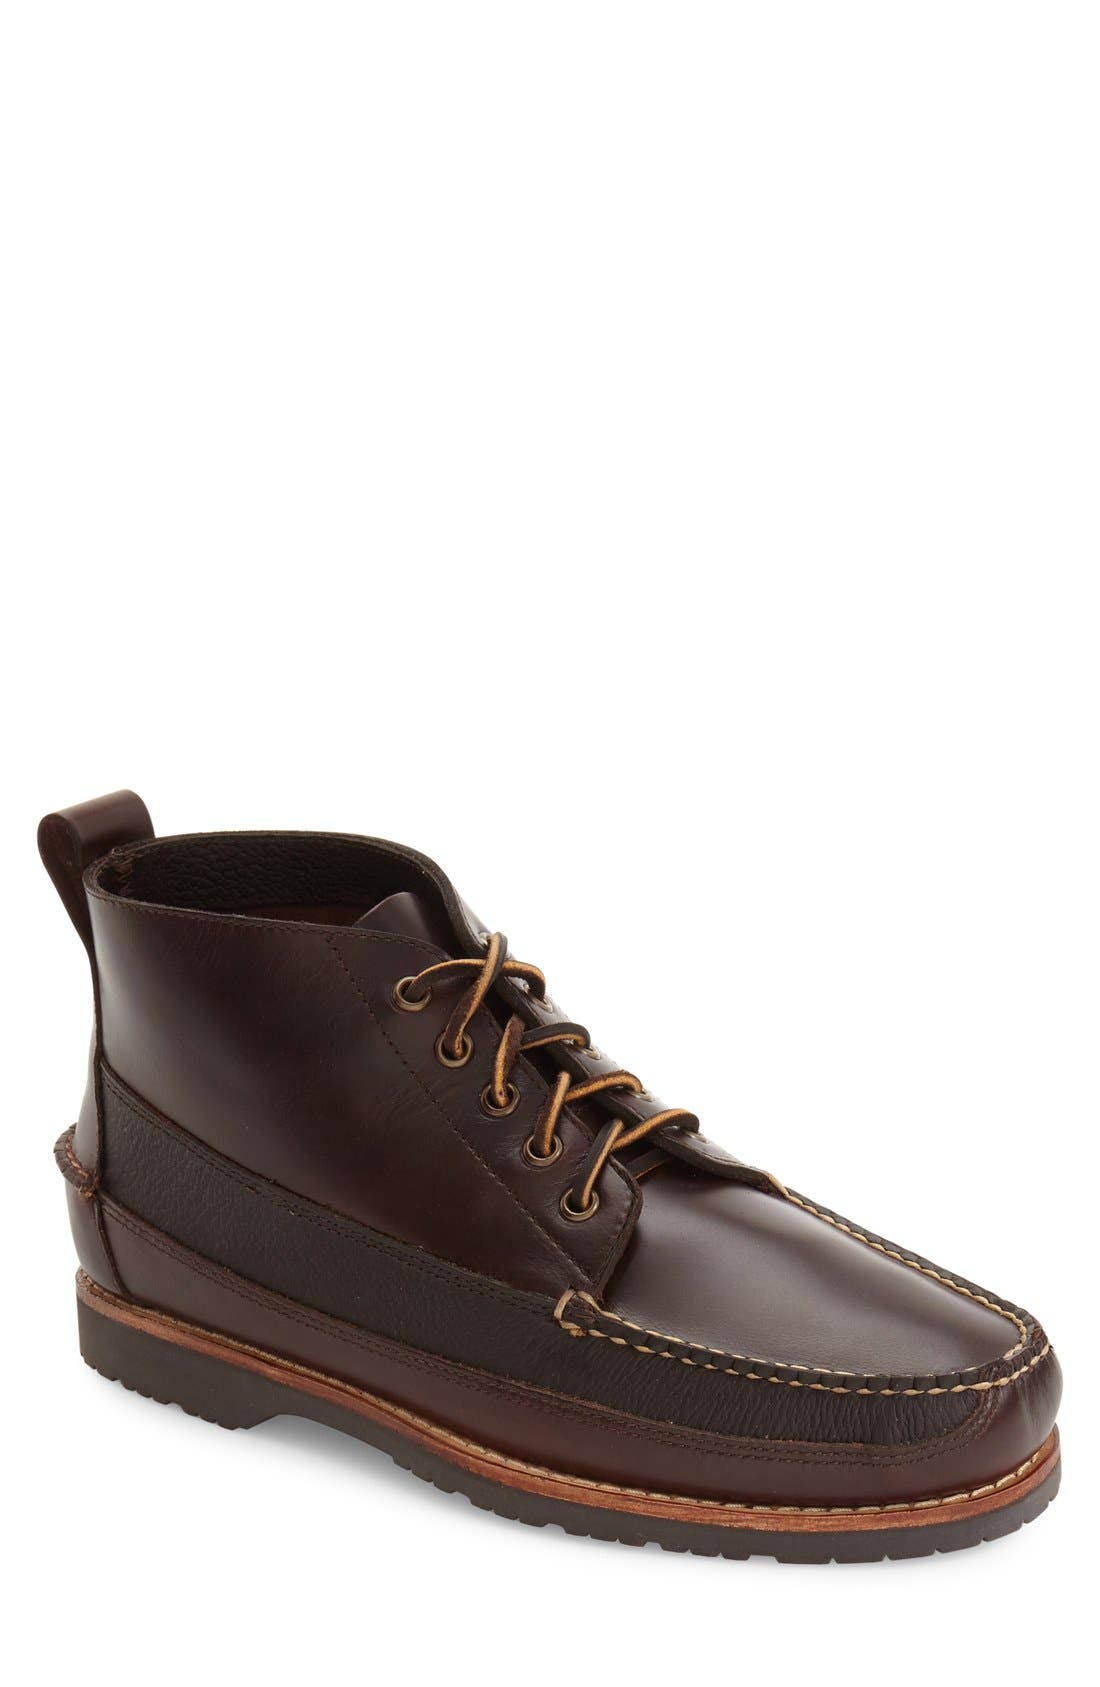 Alternate Image 1 Selected - G.H. Bass & Co. 'Scott' Chukka Boot (Men)